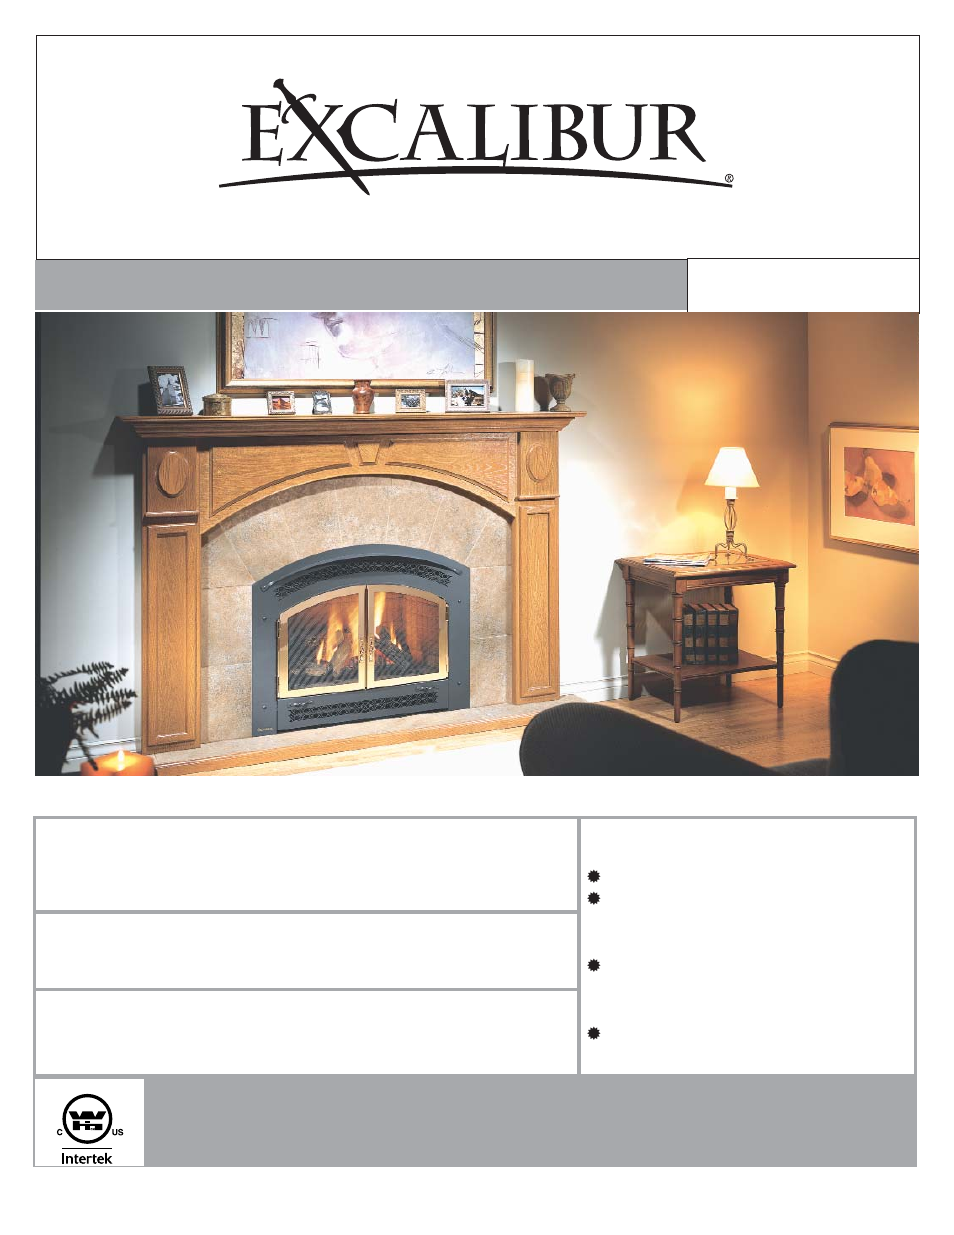 Regency Excalibur P90 Medium Gas Fireplace User Manual | 56 pages